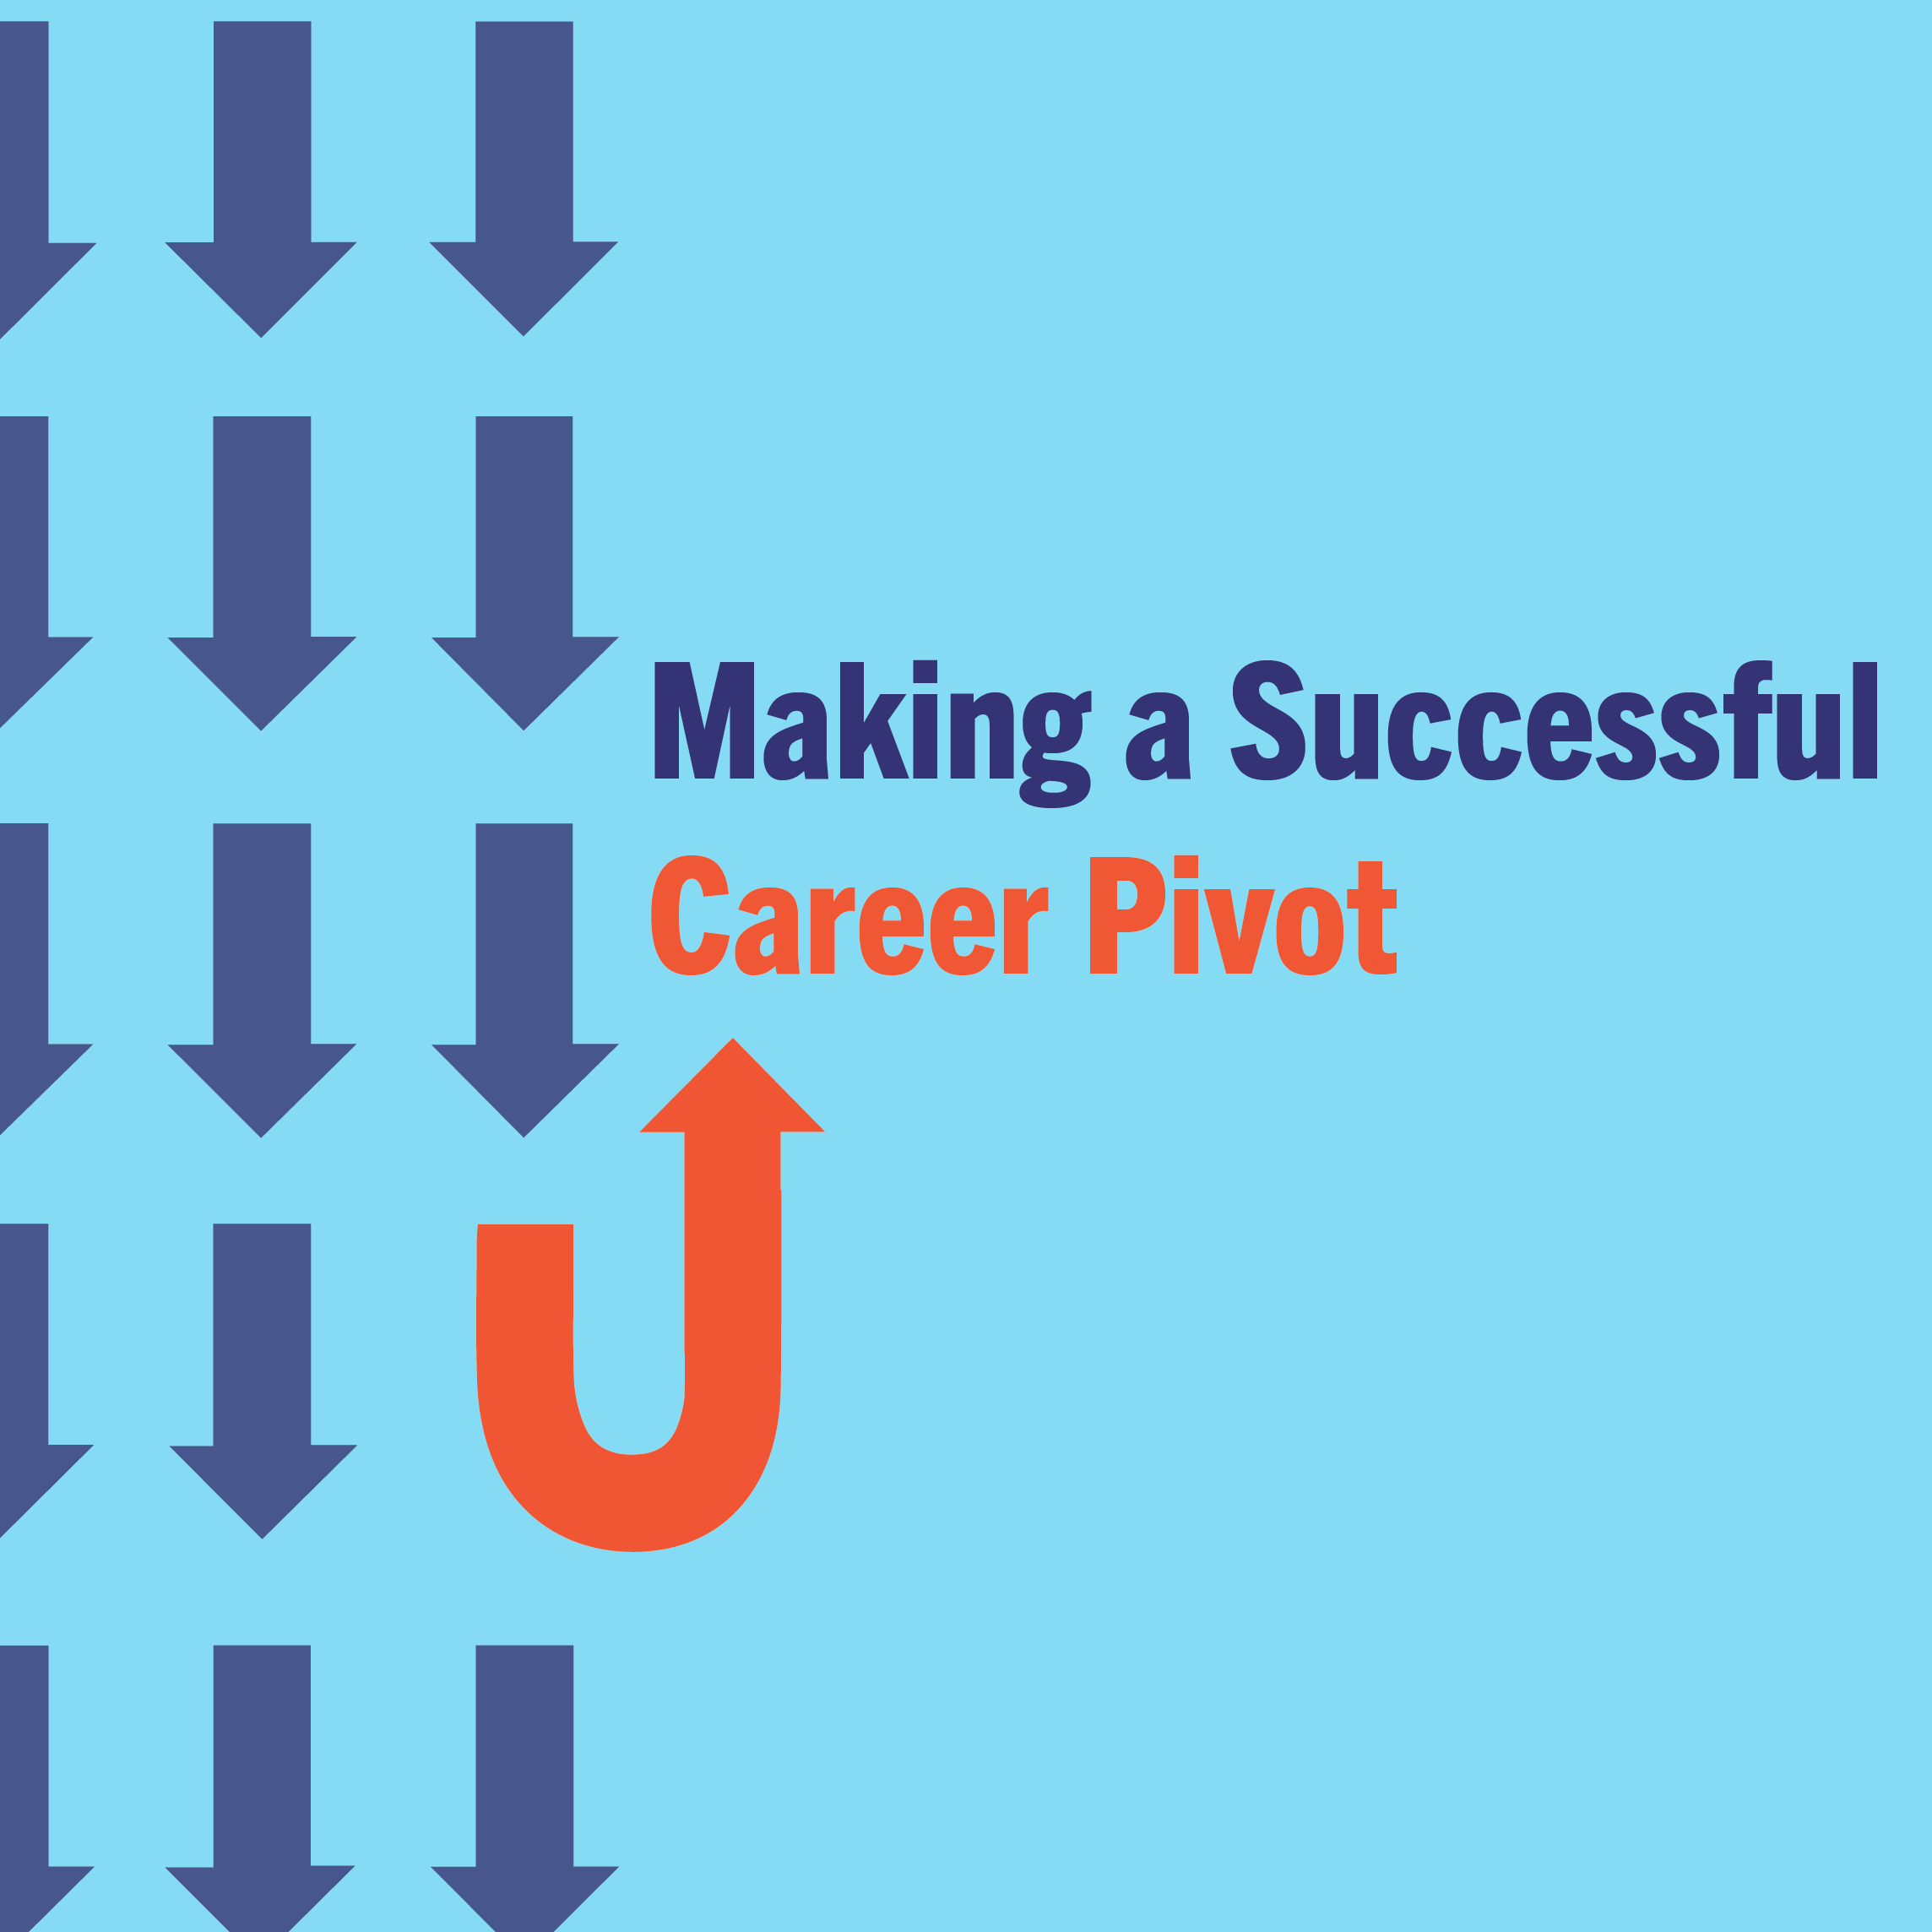 Making a Successful Career Pivot - Panel Discussion @ Zoom